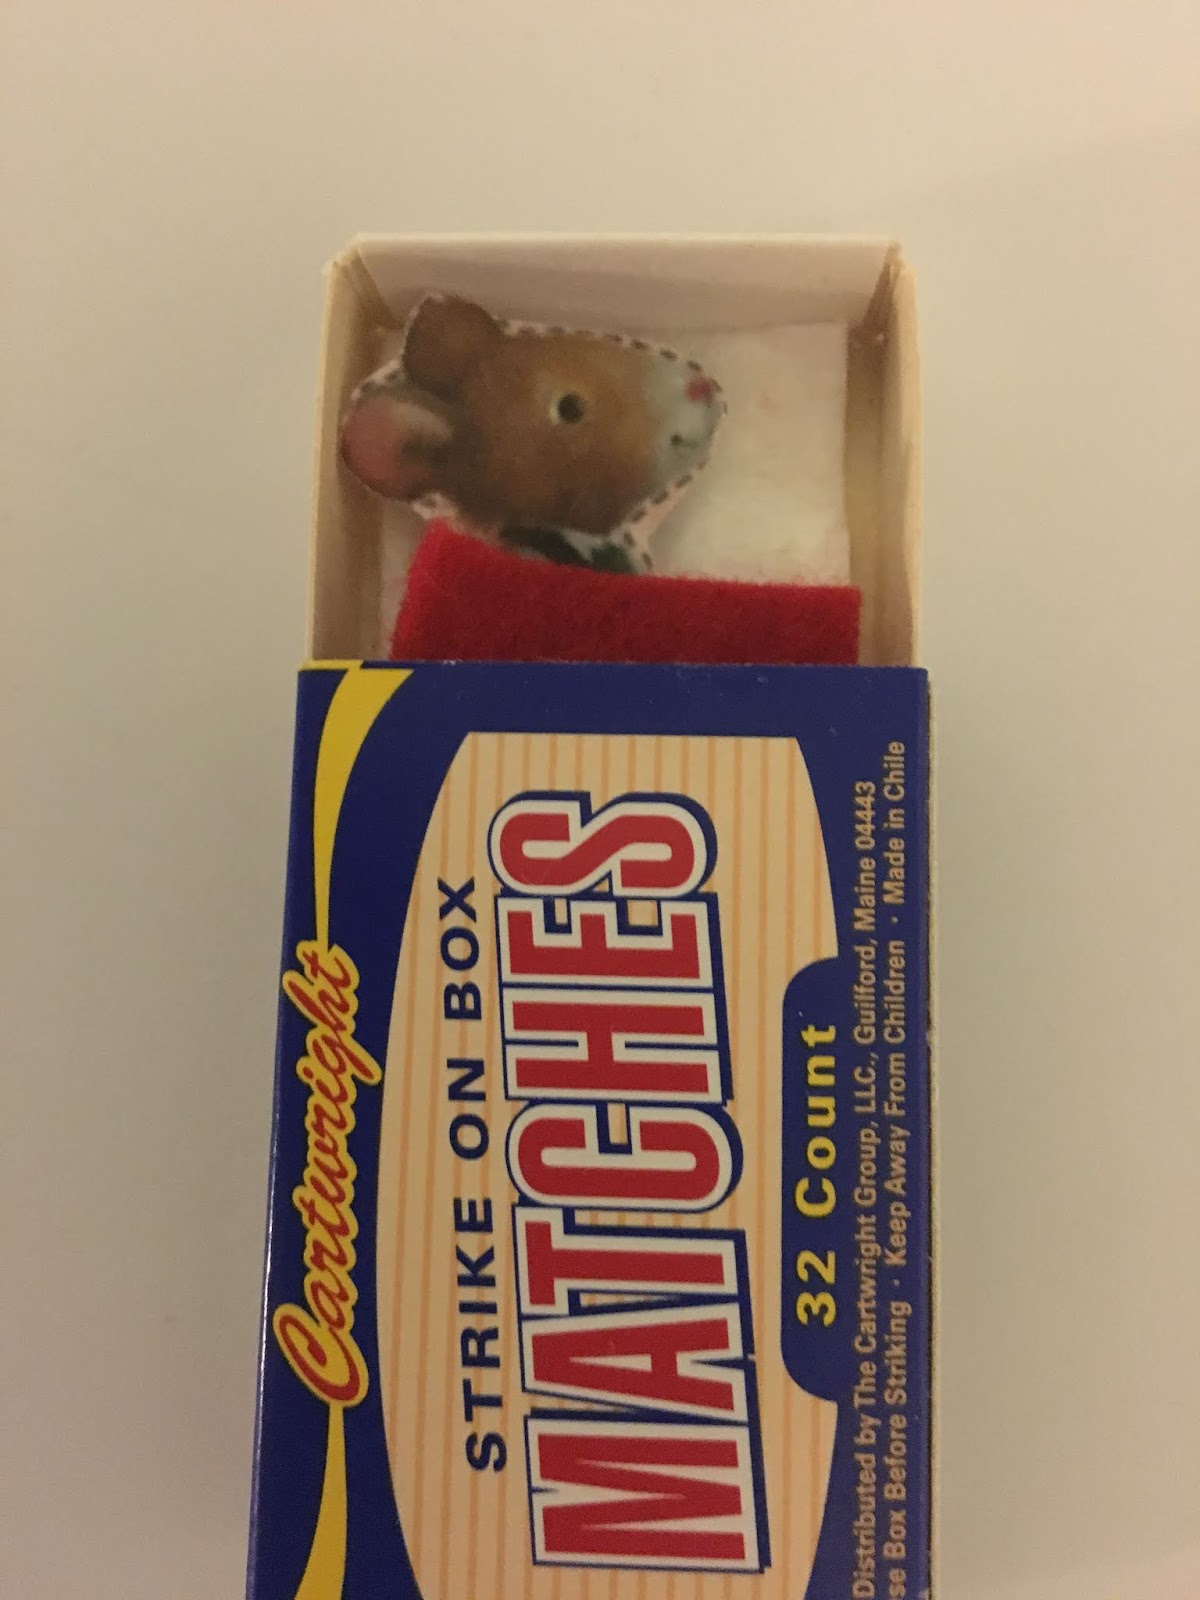 Mindy Baker Books Mouse In A Matchbox Craft Idea For Kids